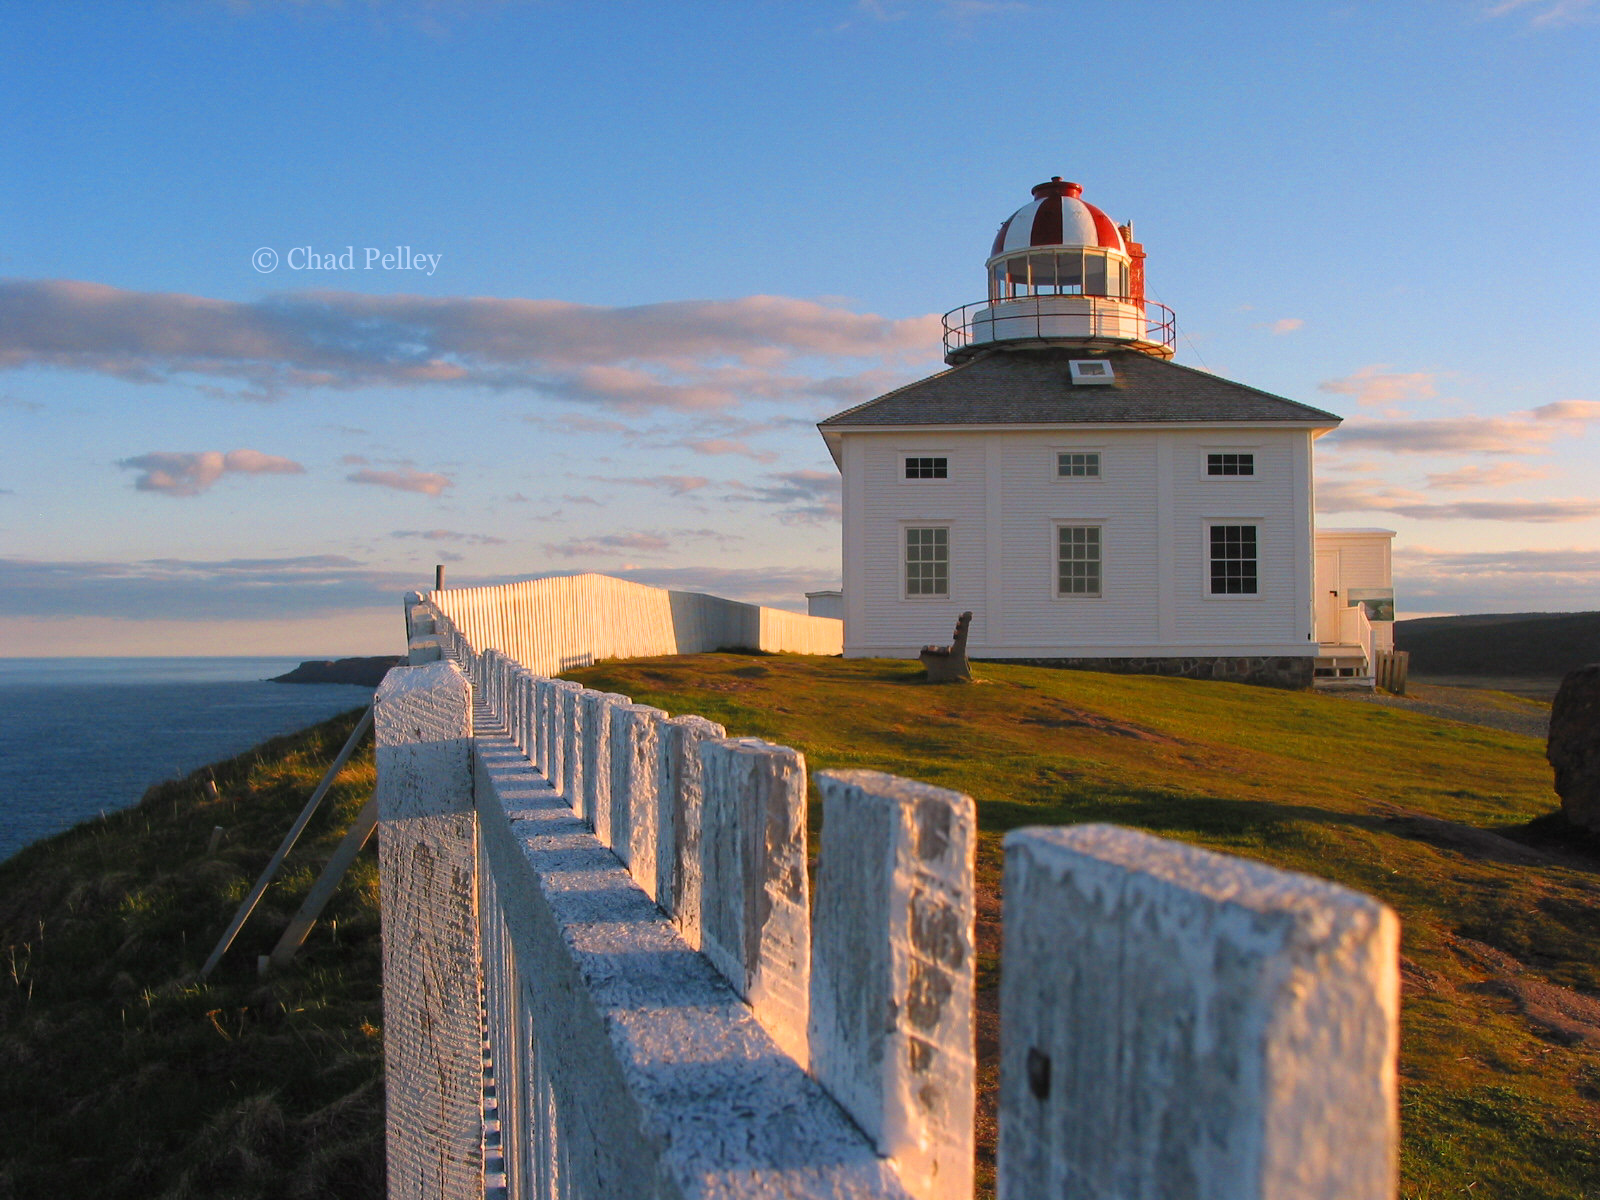 cape-spear-lighthouse-with-fence-1-copy